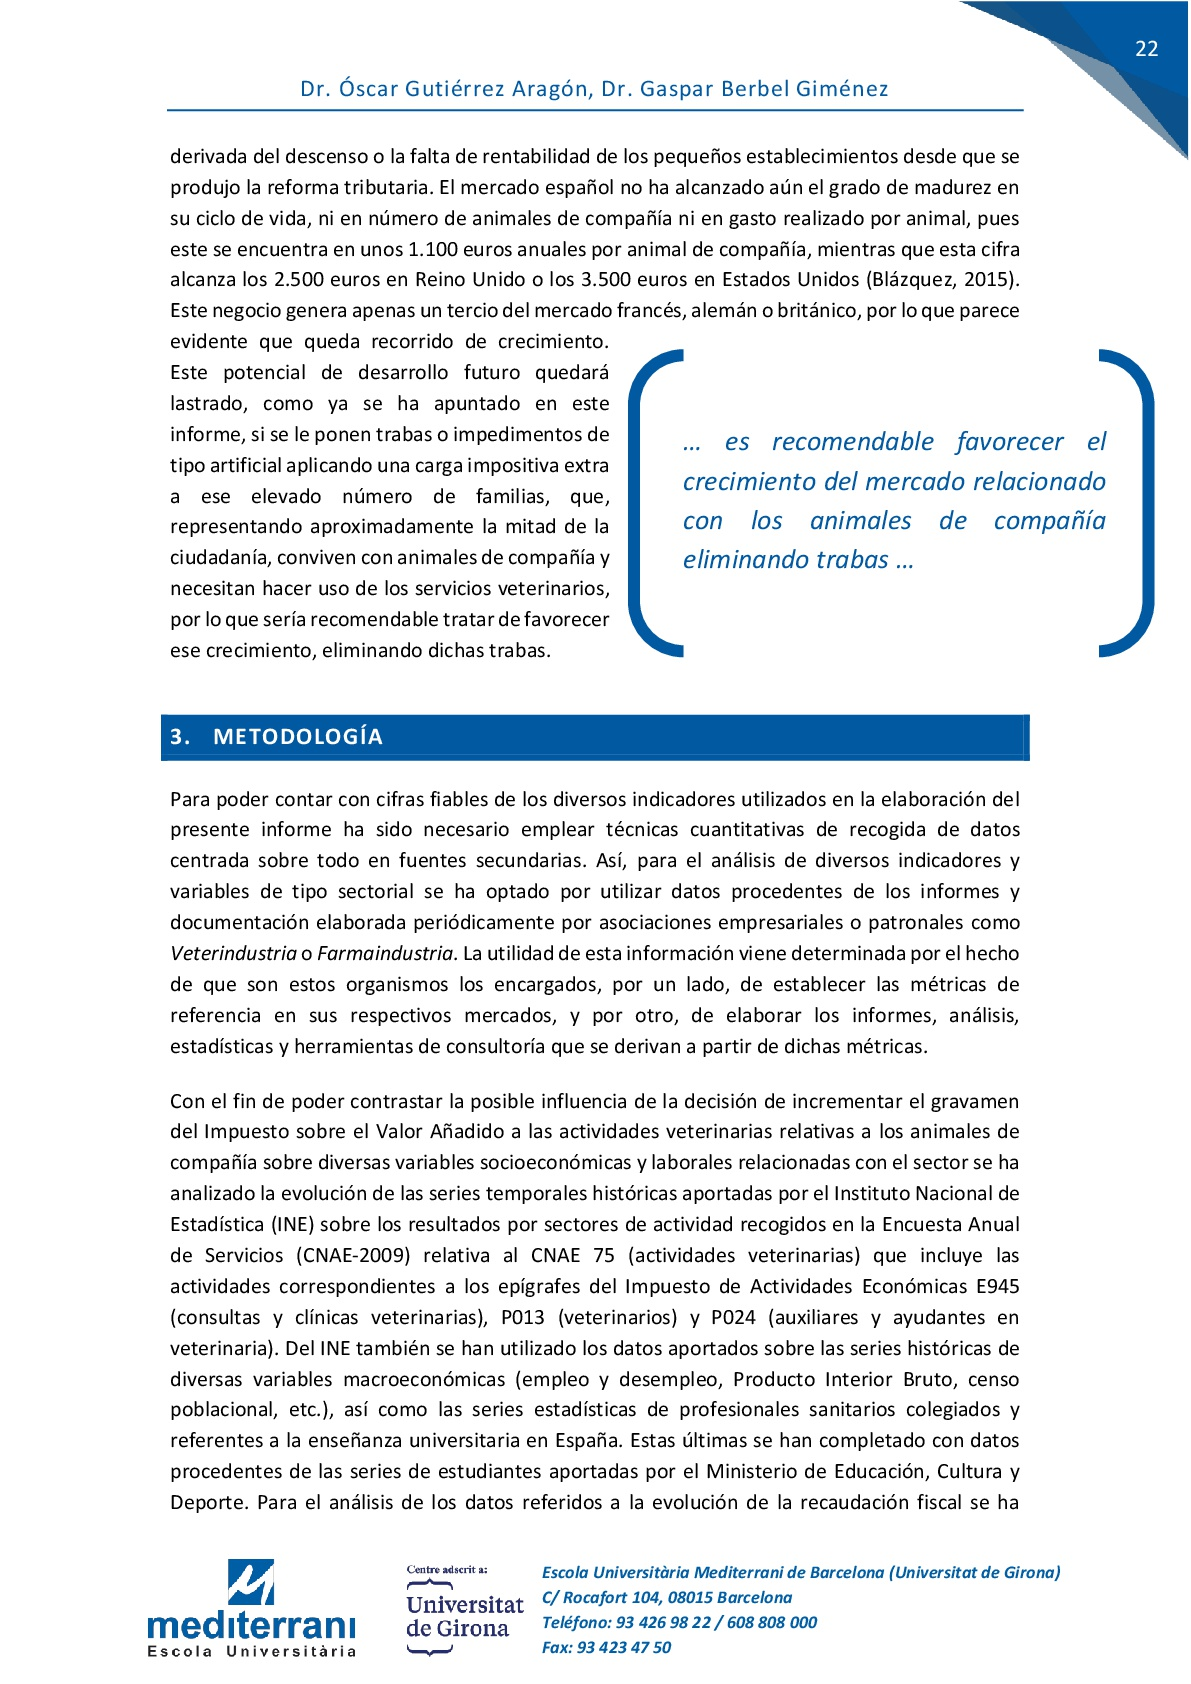 Informe-Veterinario-2017-+-informe-legal-2015-(3)-027